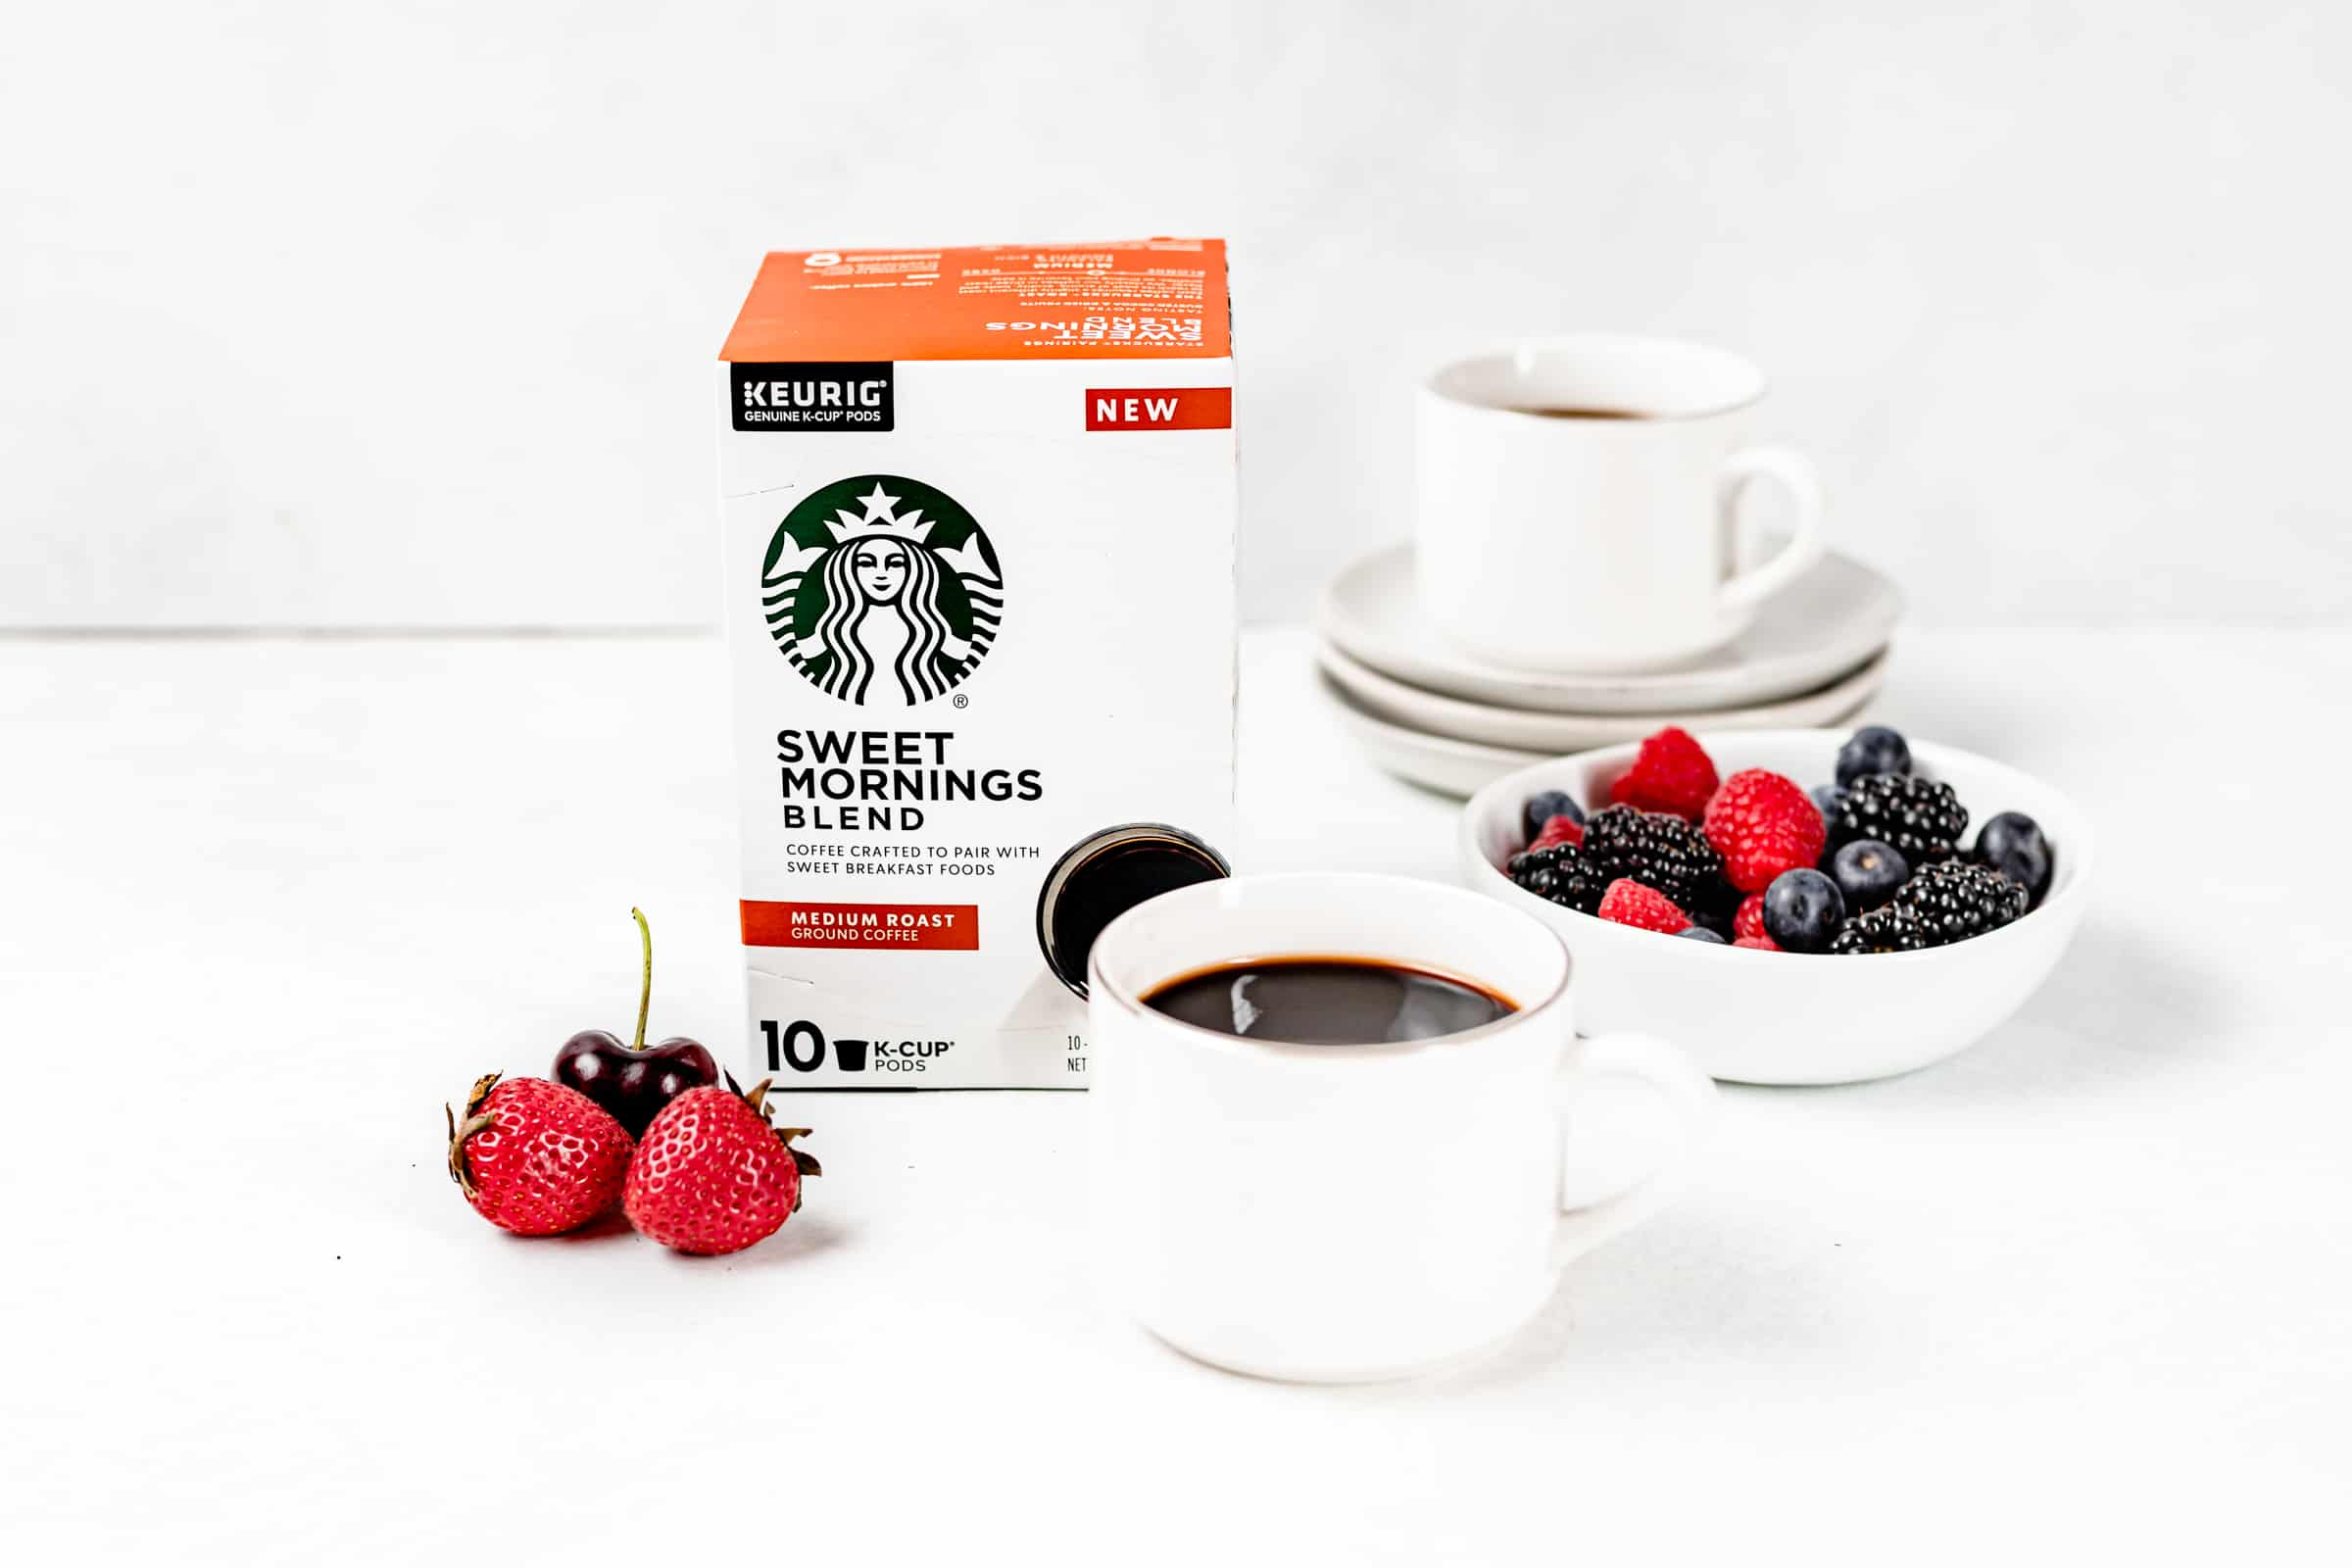 starbucks sweet morning blends coffee